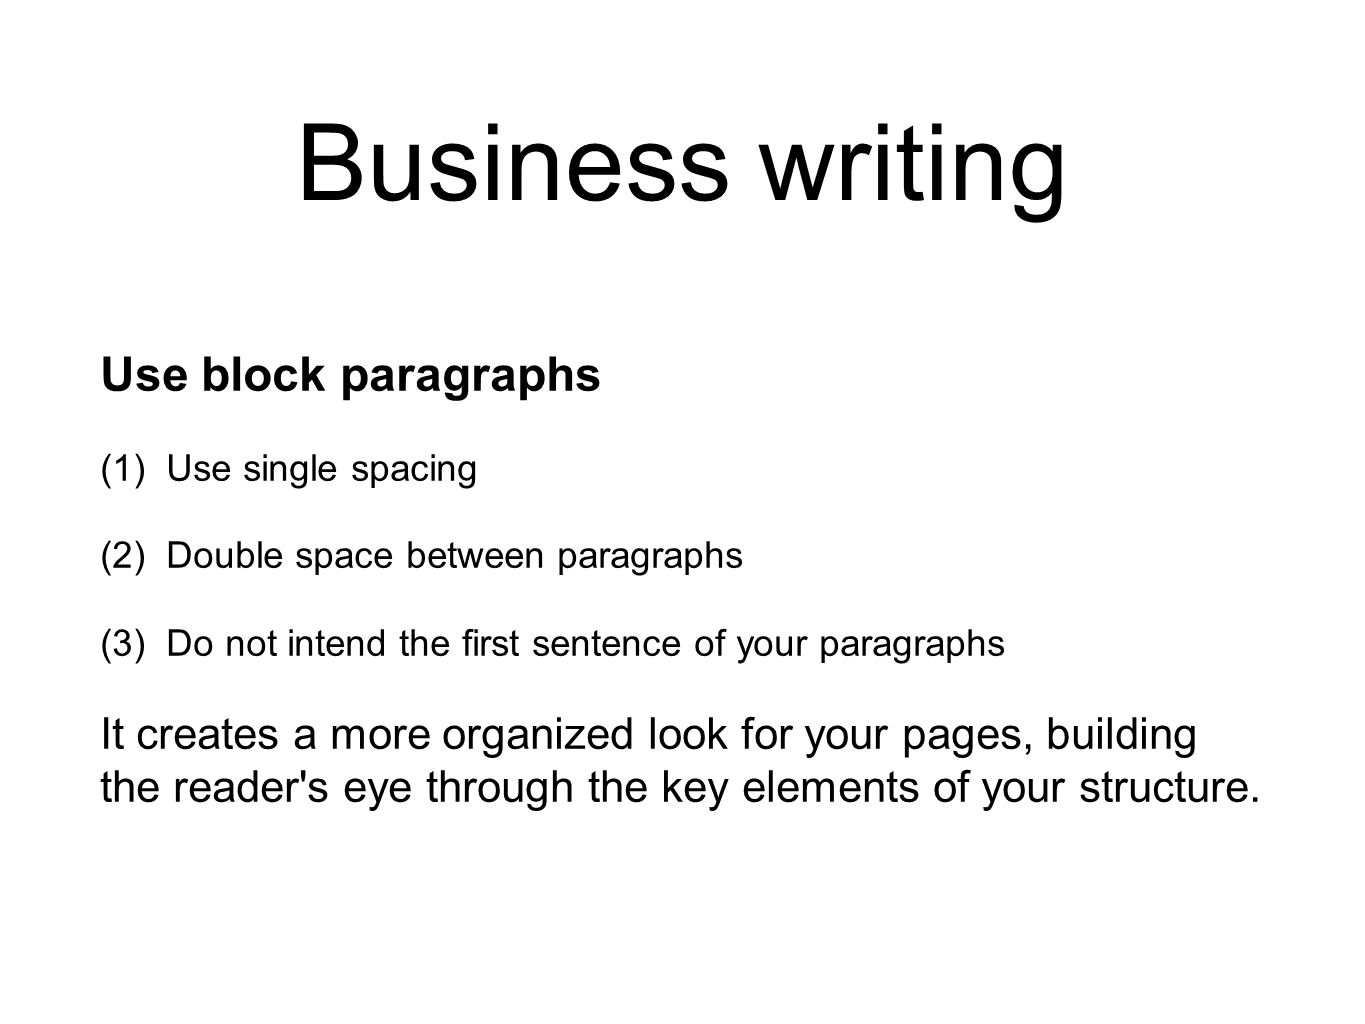 Effective Business Writing: Structure your document